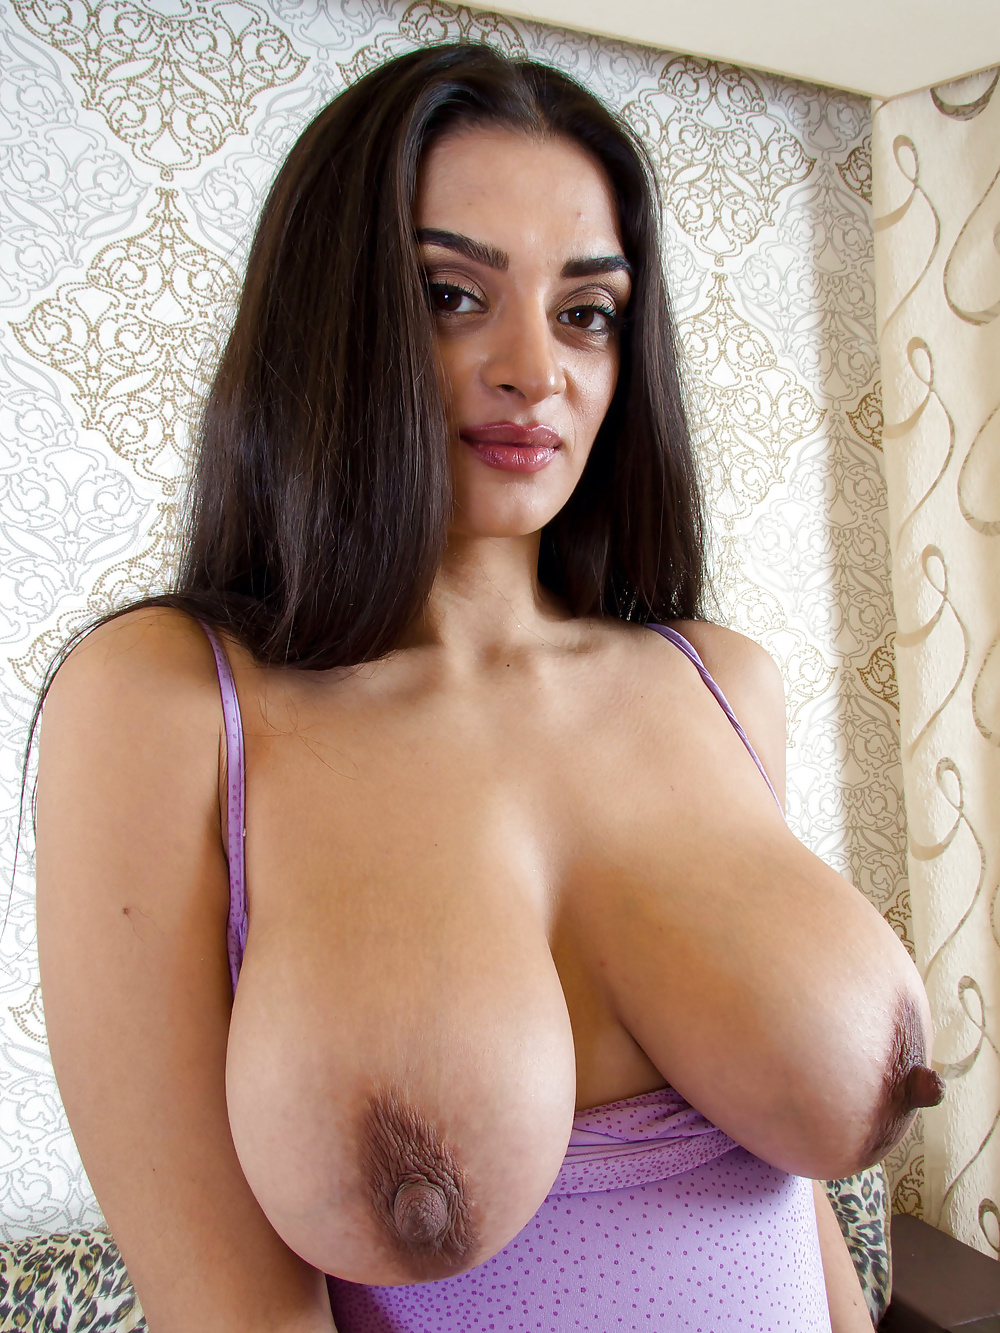 Rekha bhabhi big boobs phone cam sex, dehil